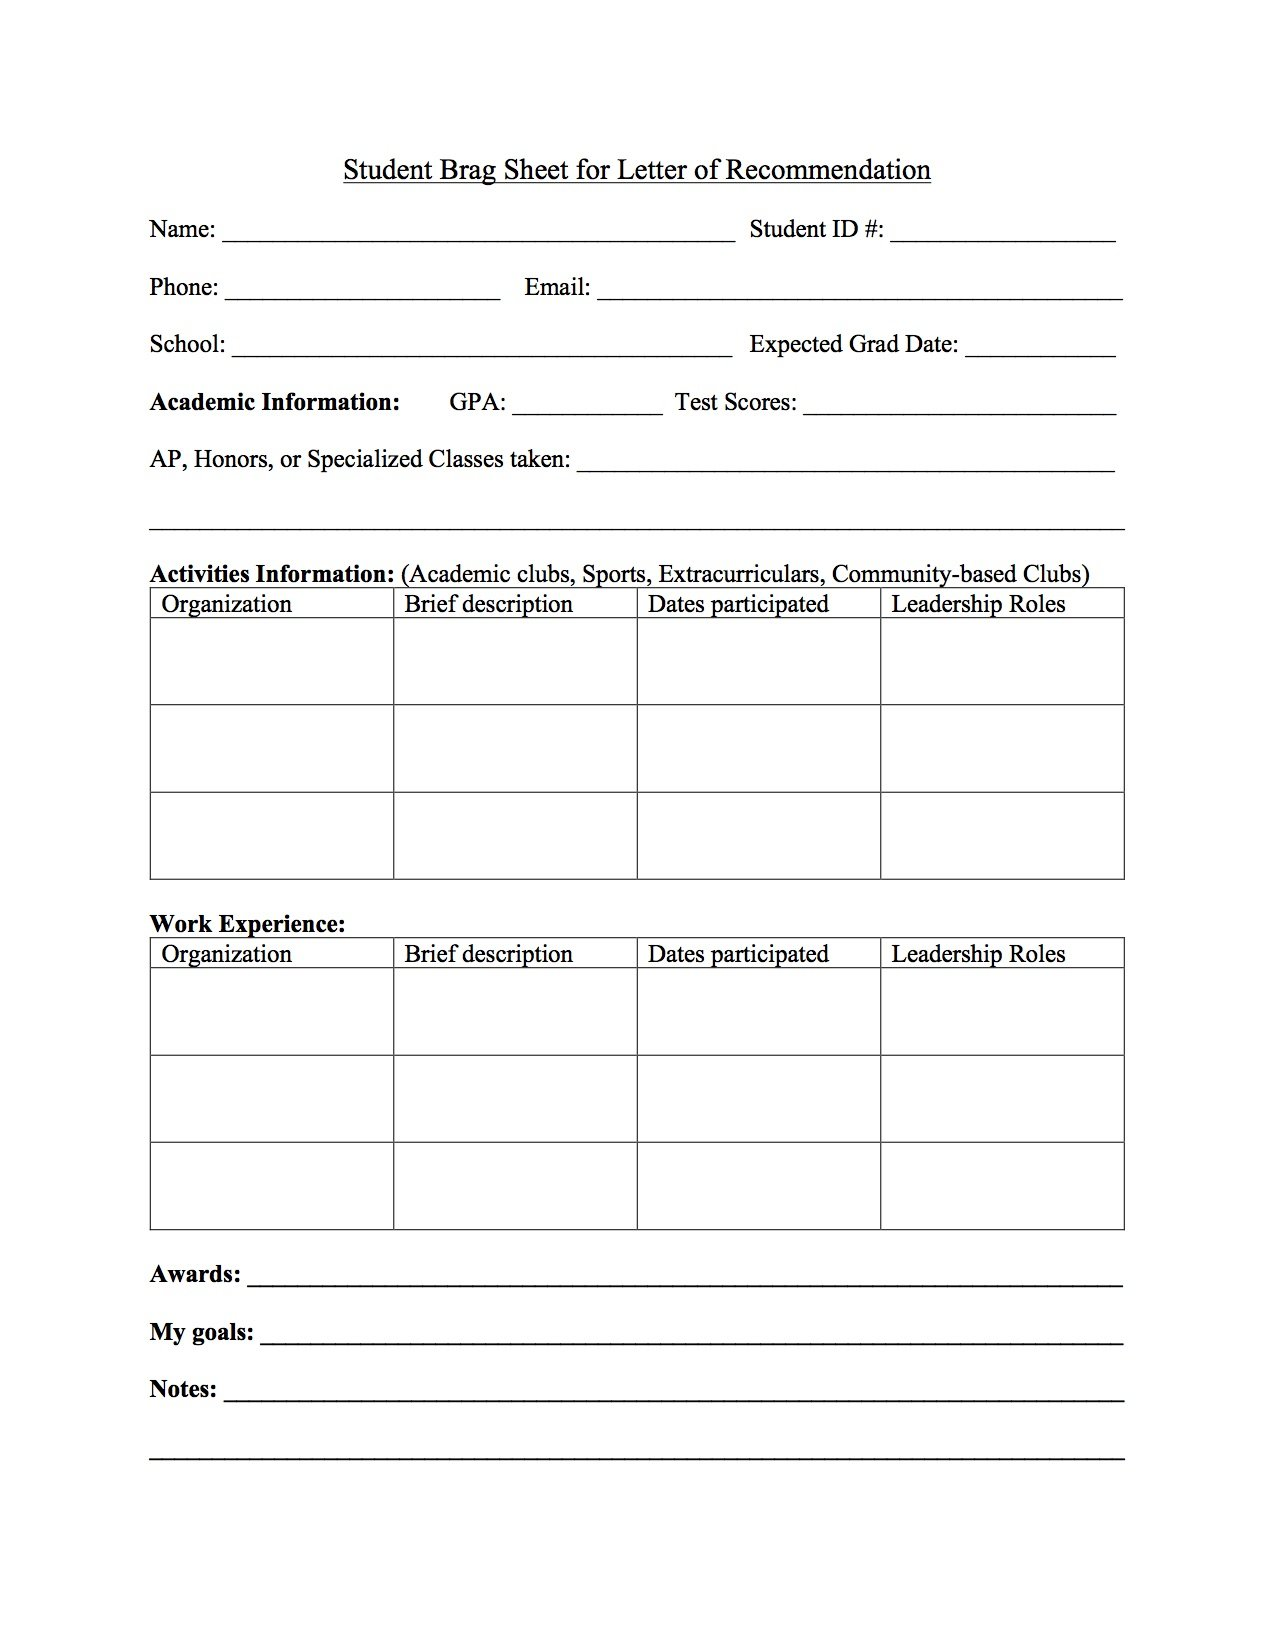 Brag Sheet Everything Students Need To Know Template